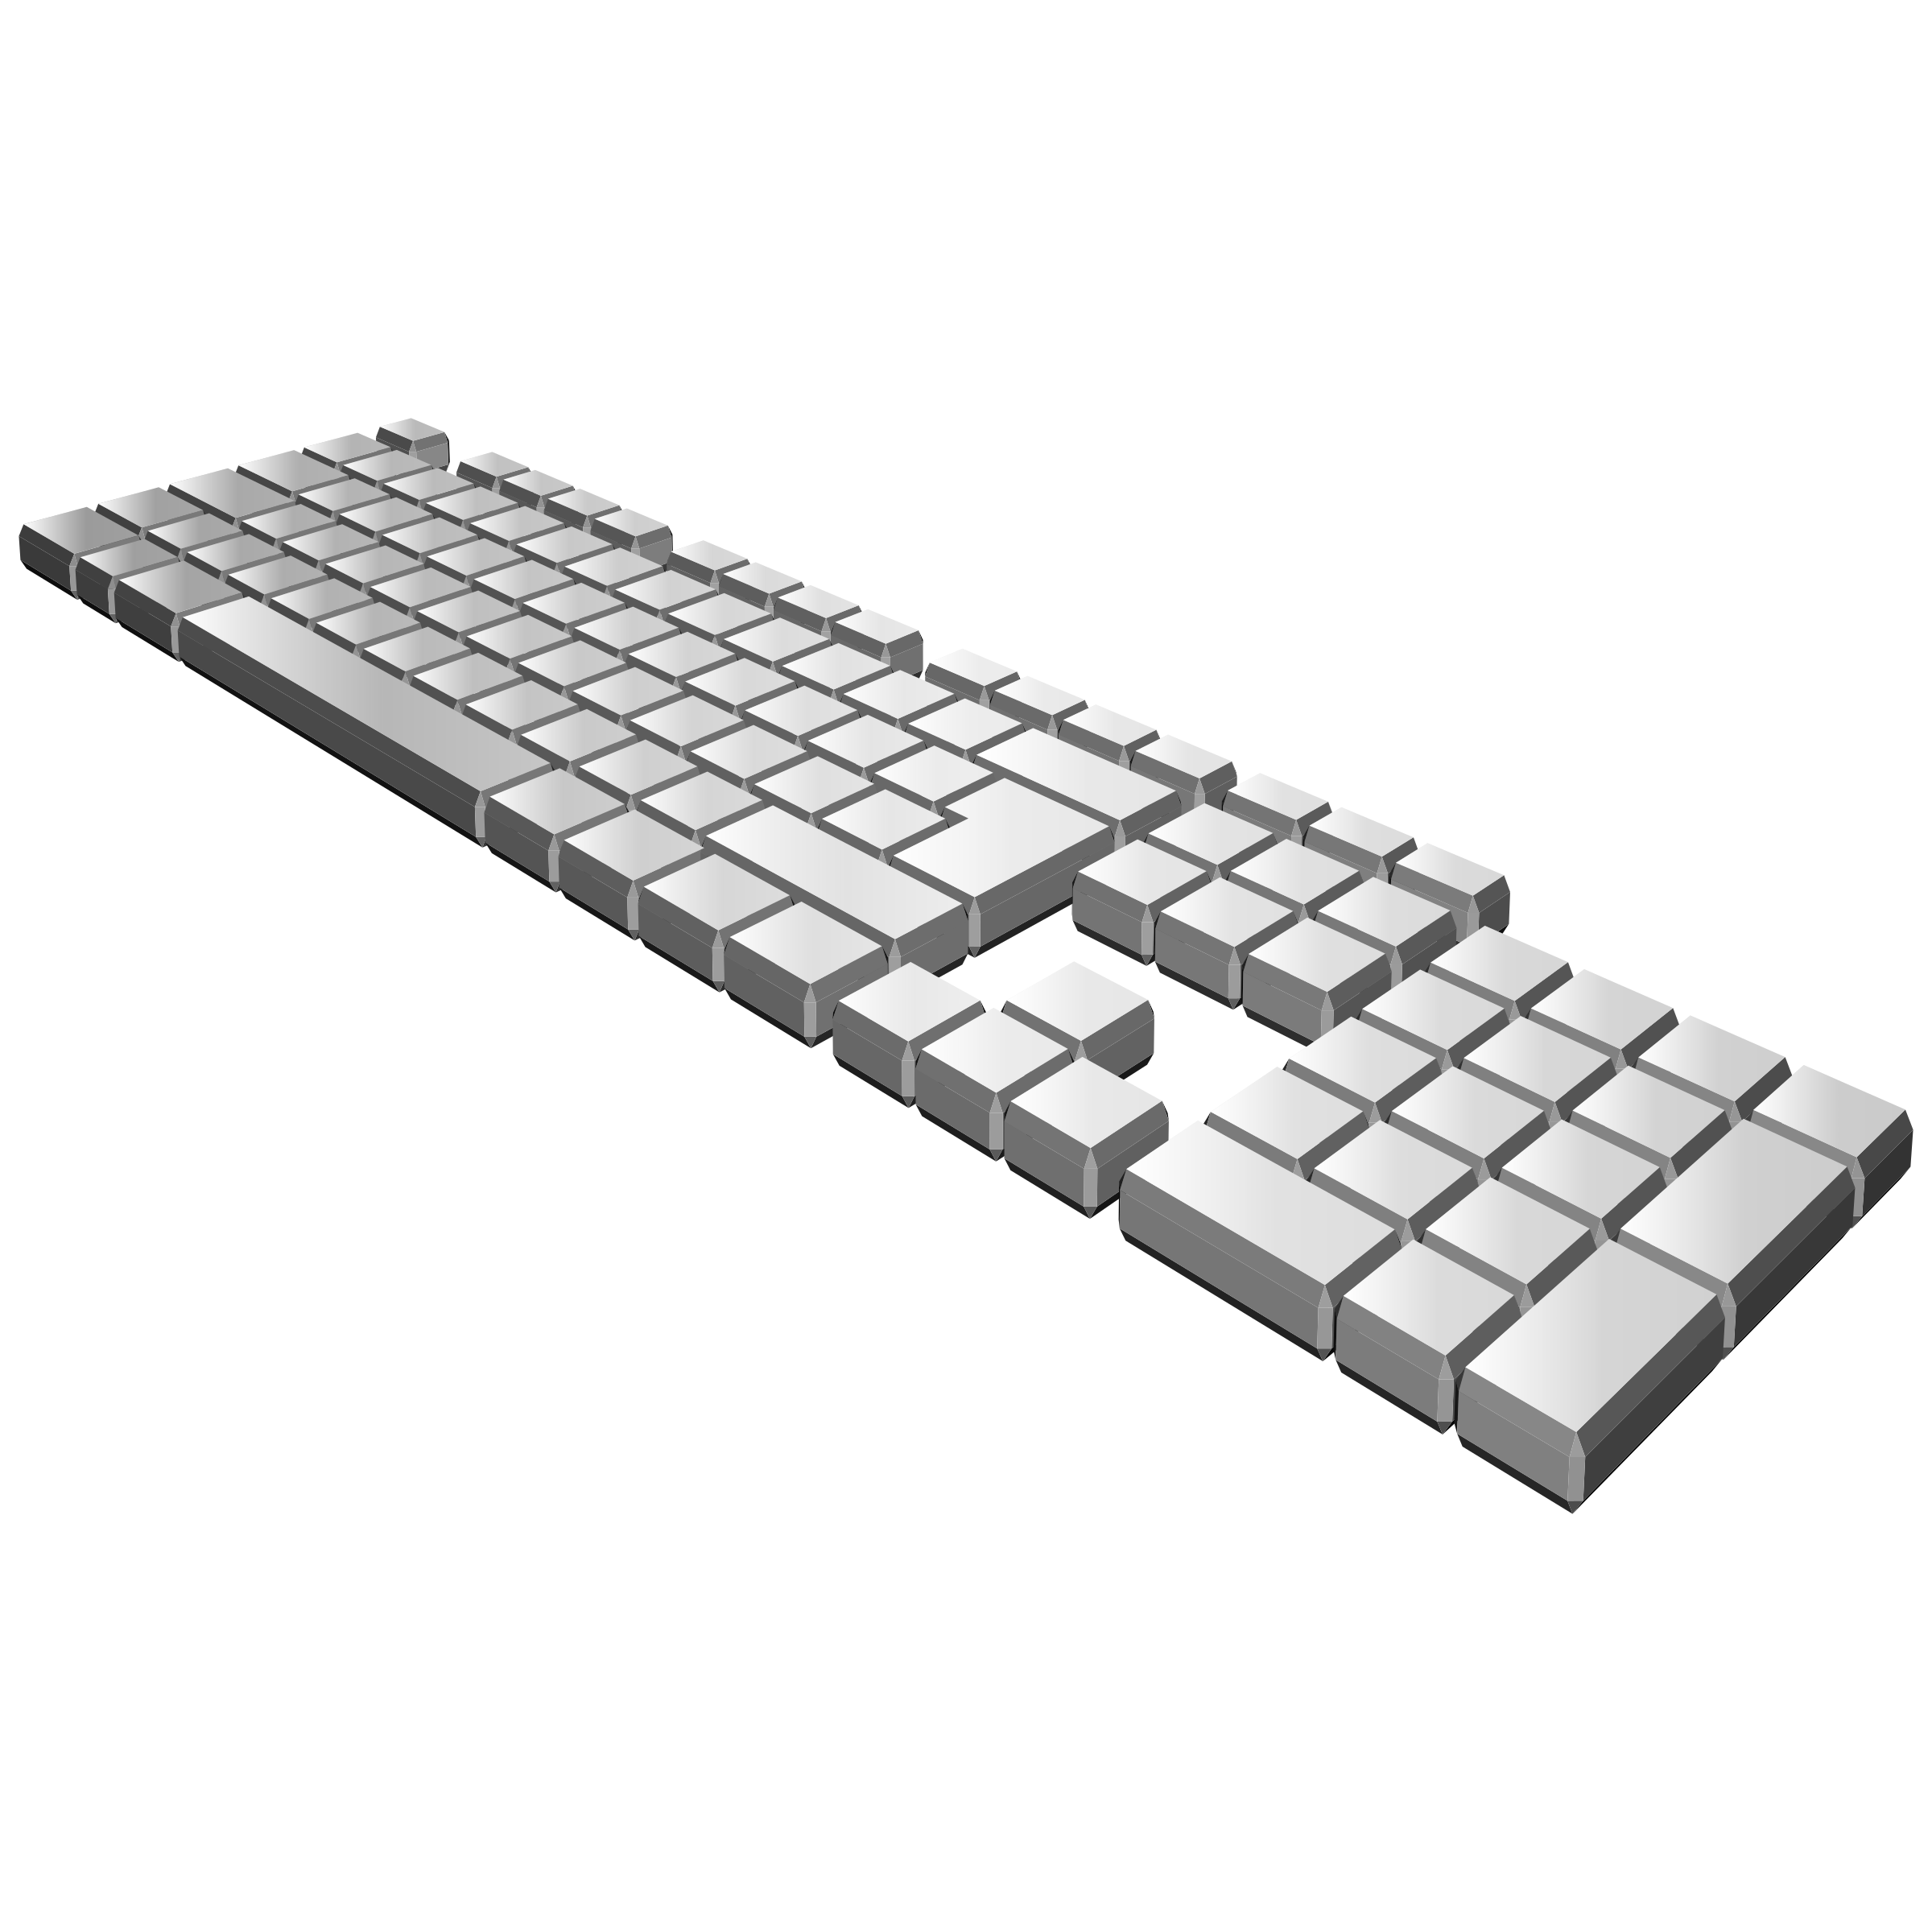 Clipart computer keyboard. Perspective